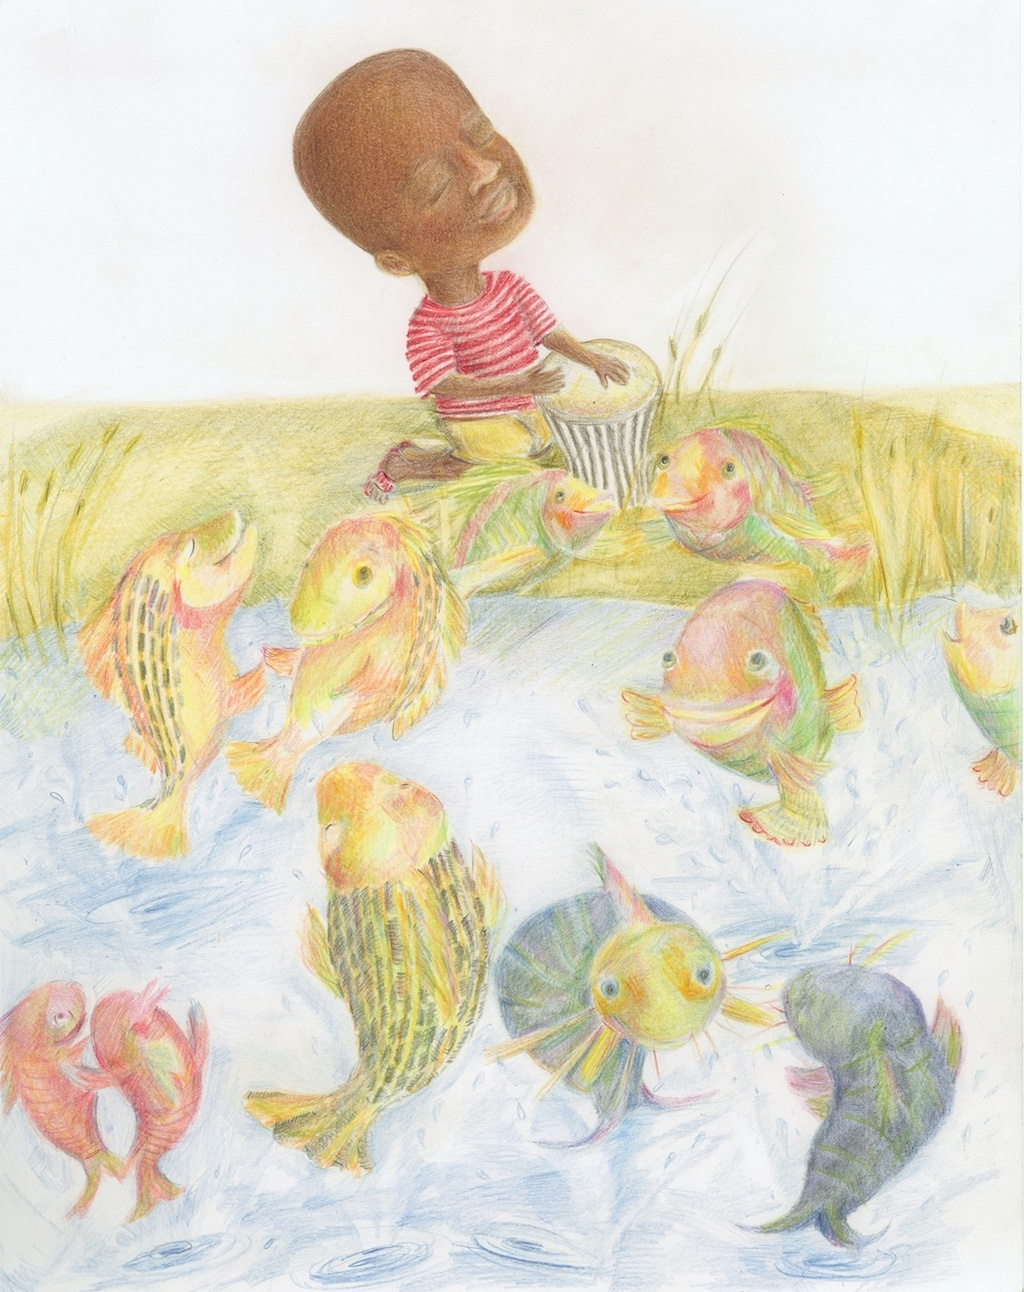 Okumu is delighted when the fish start dancing